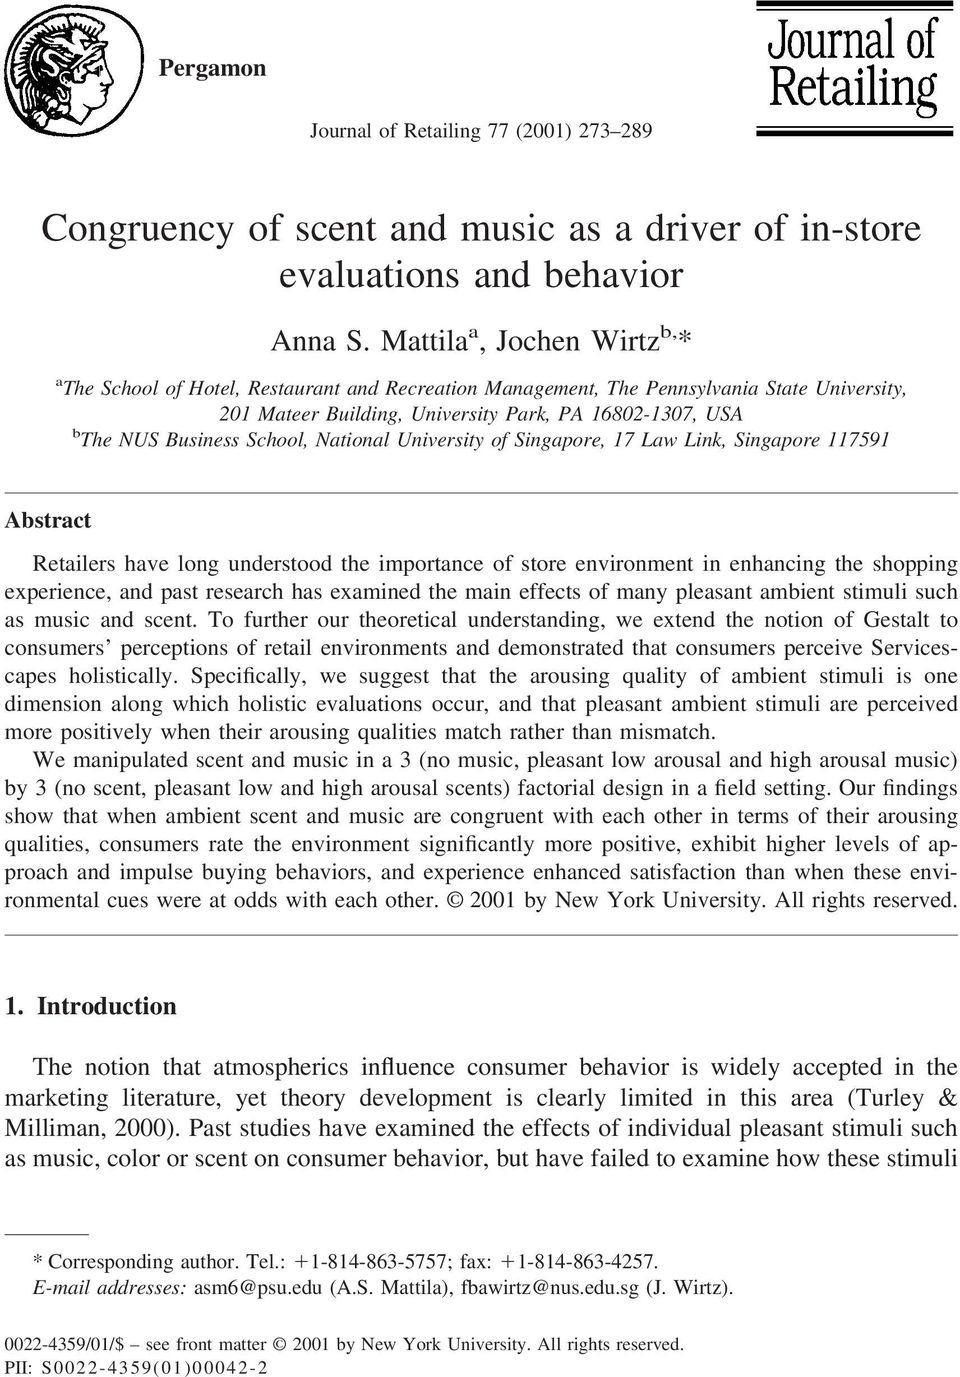 Business School, National University of Singapore, 17 Law Link, Singapore 117591 Abstract Retailers have long understood the importance of store environment in enhancing the shopping experience, and